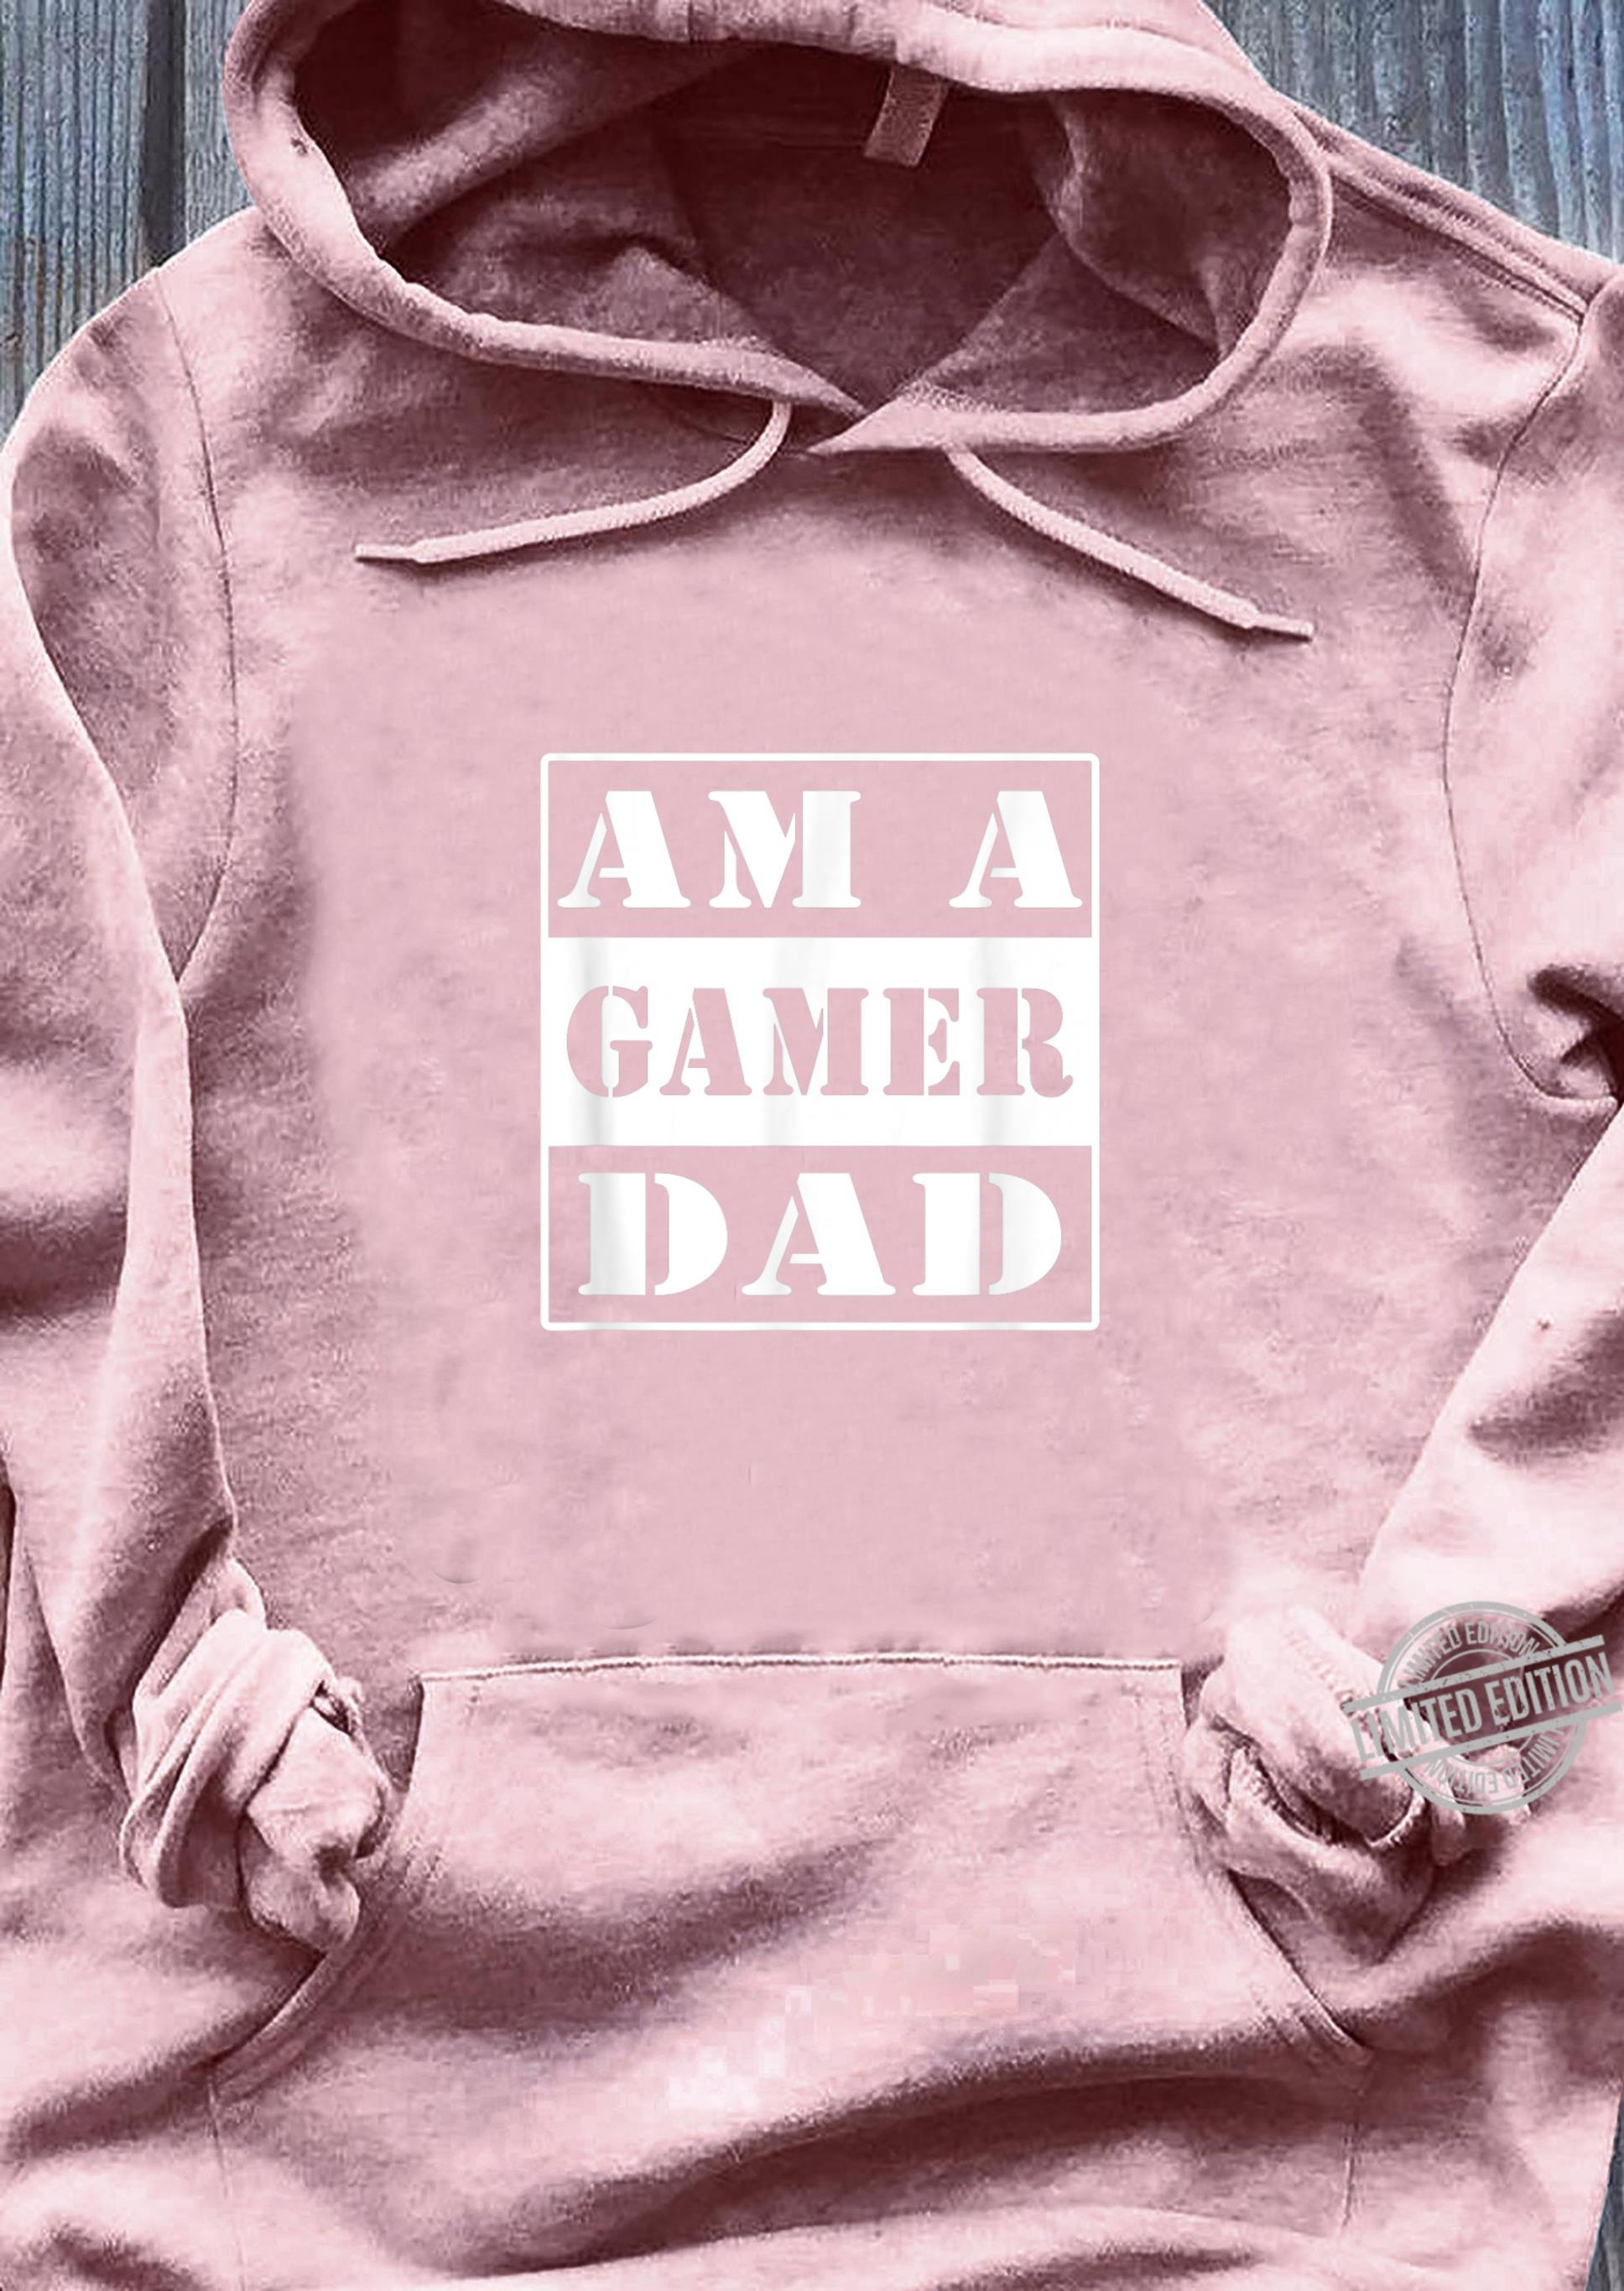 Am a gamer dad for gaming fathers Shirt sweater